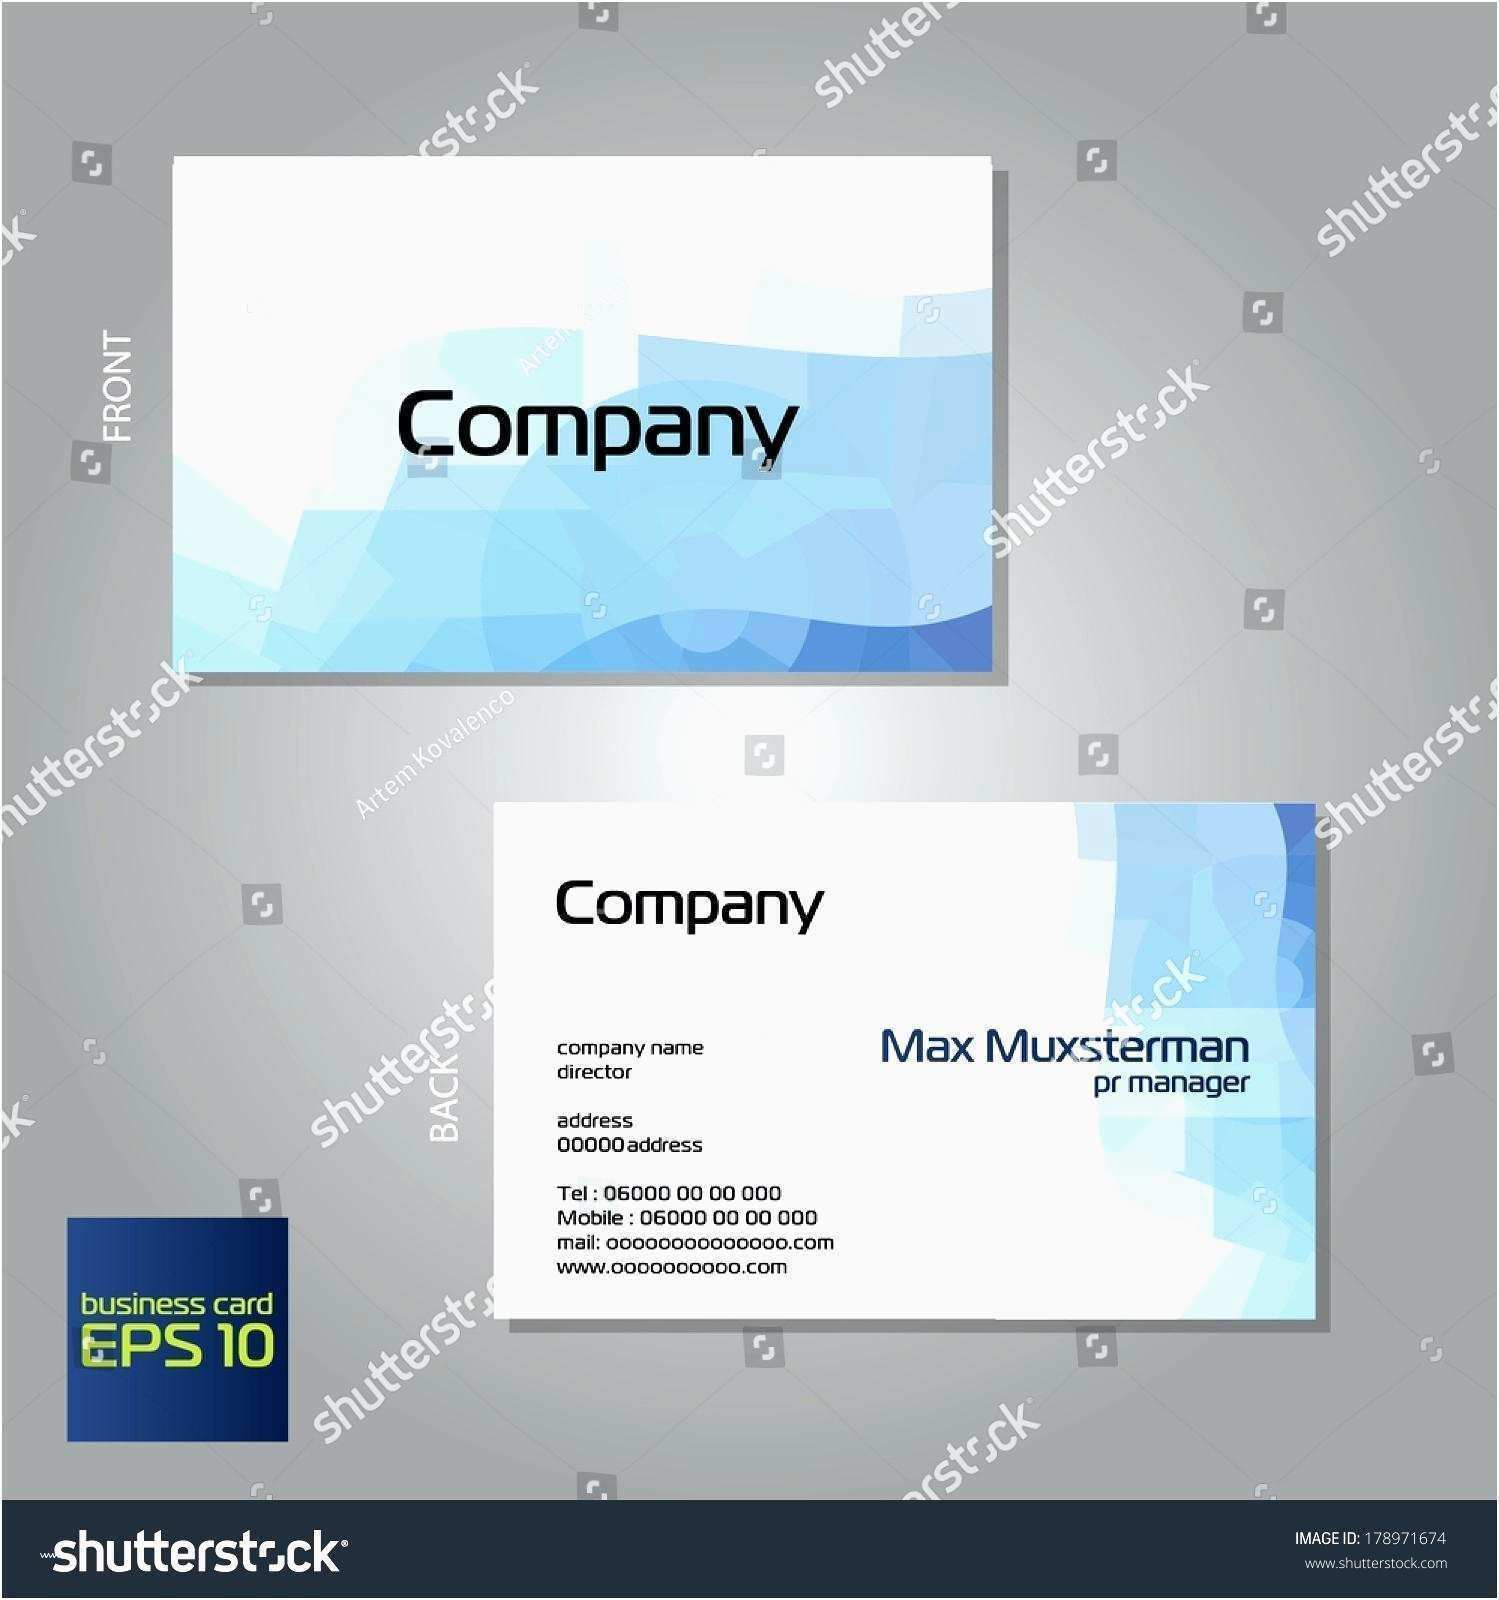 51 Online Avery Business Card Template 8376 for Ms Word for Avery Business Card Template 8376